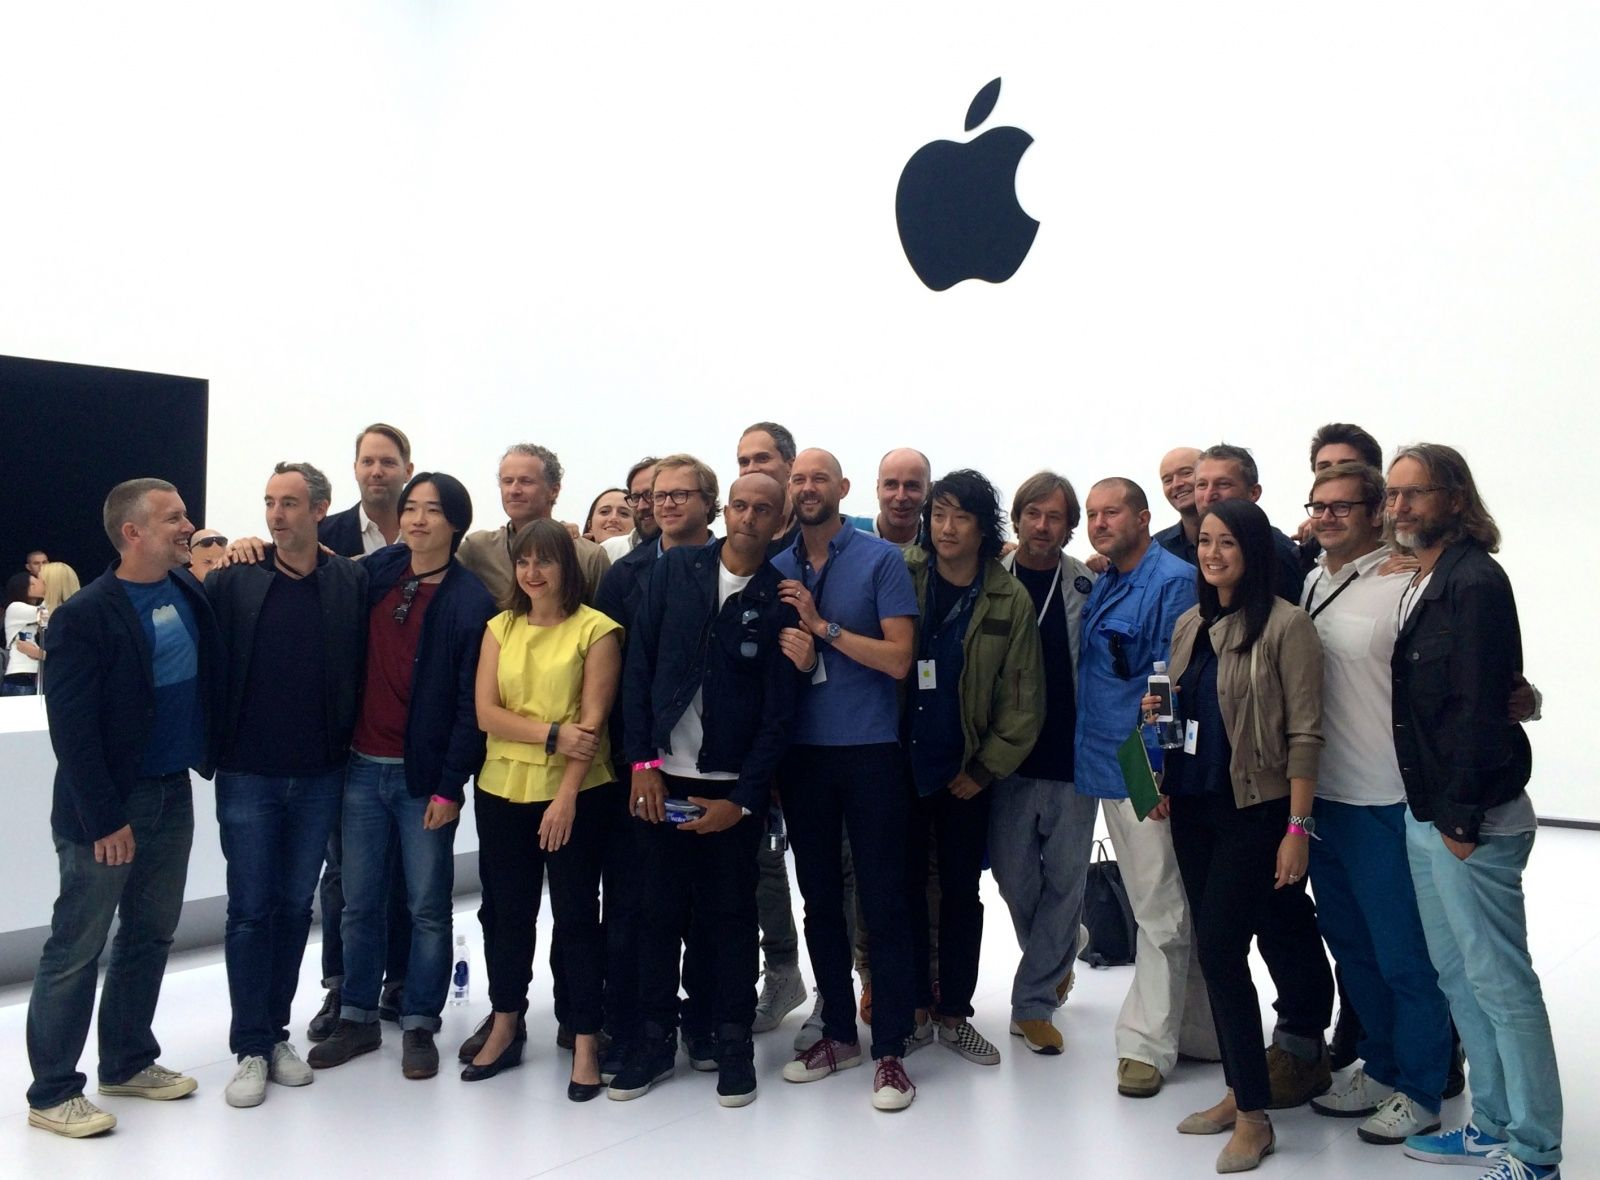 Apple's Industrial Design team tijdens de onthulling van de Apple Watch [Photo: Leander Kahney/Cult of Mac]